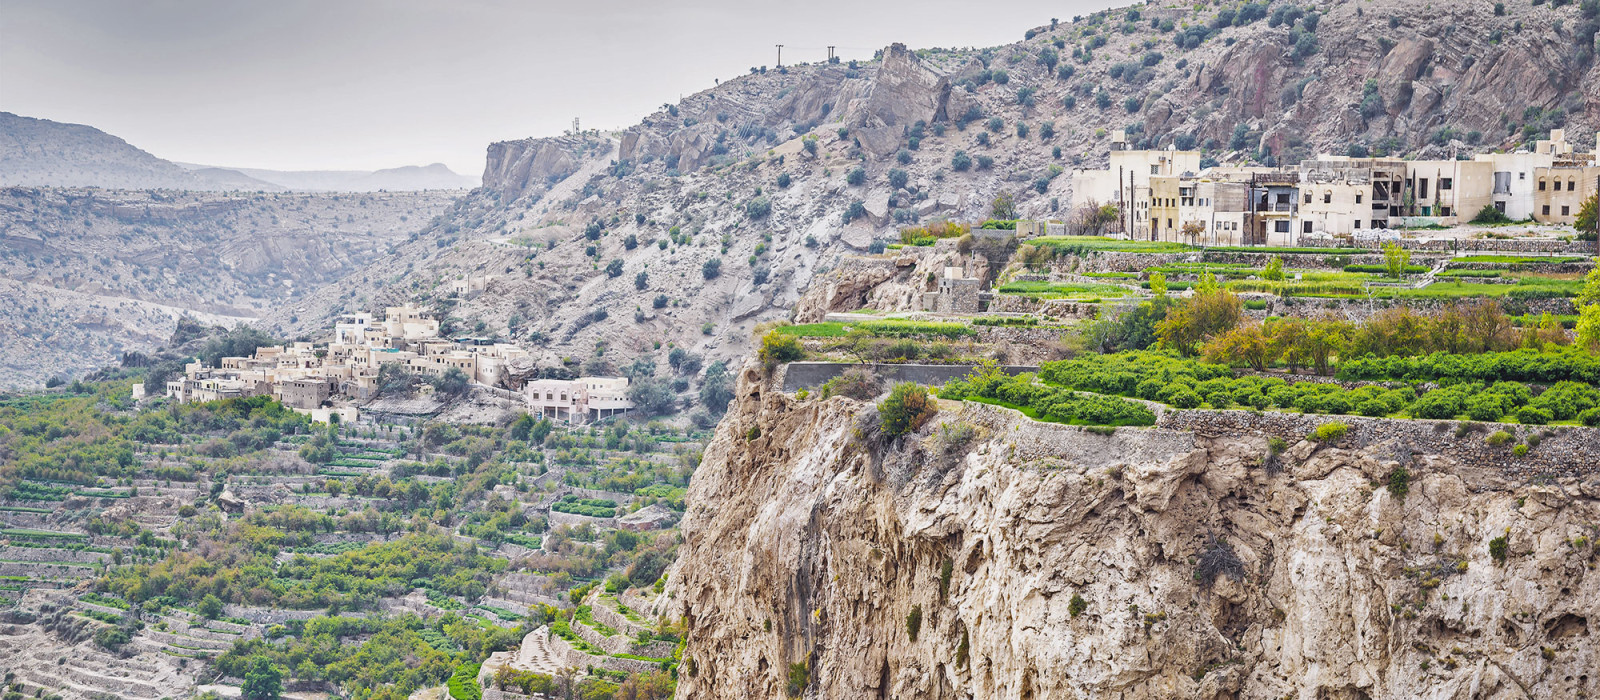 Destination Jebel Akhdar Oman